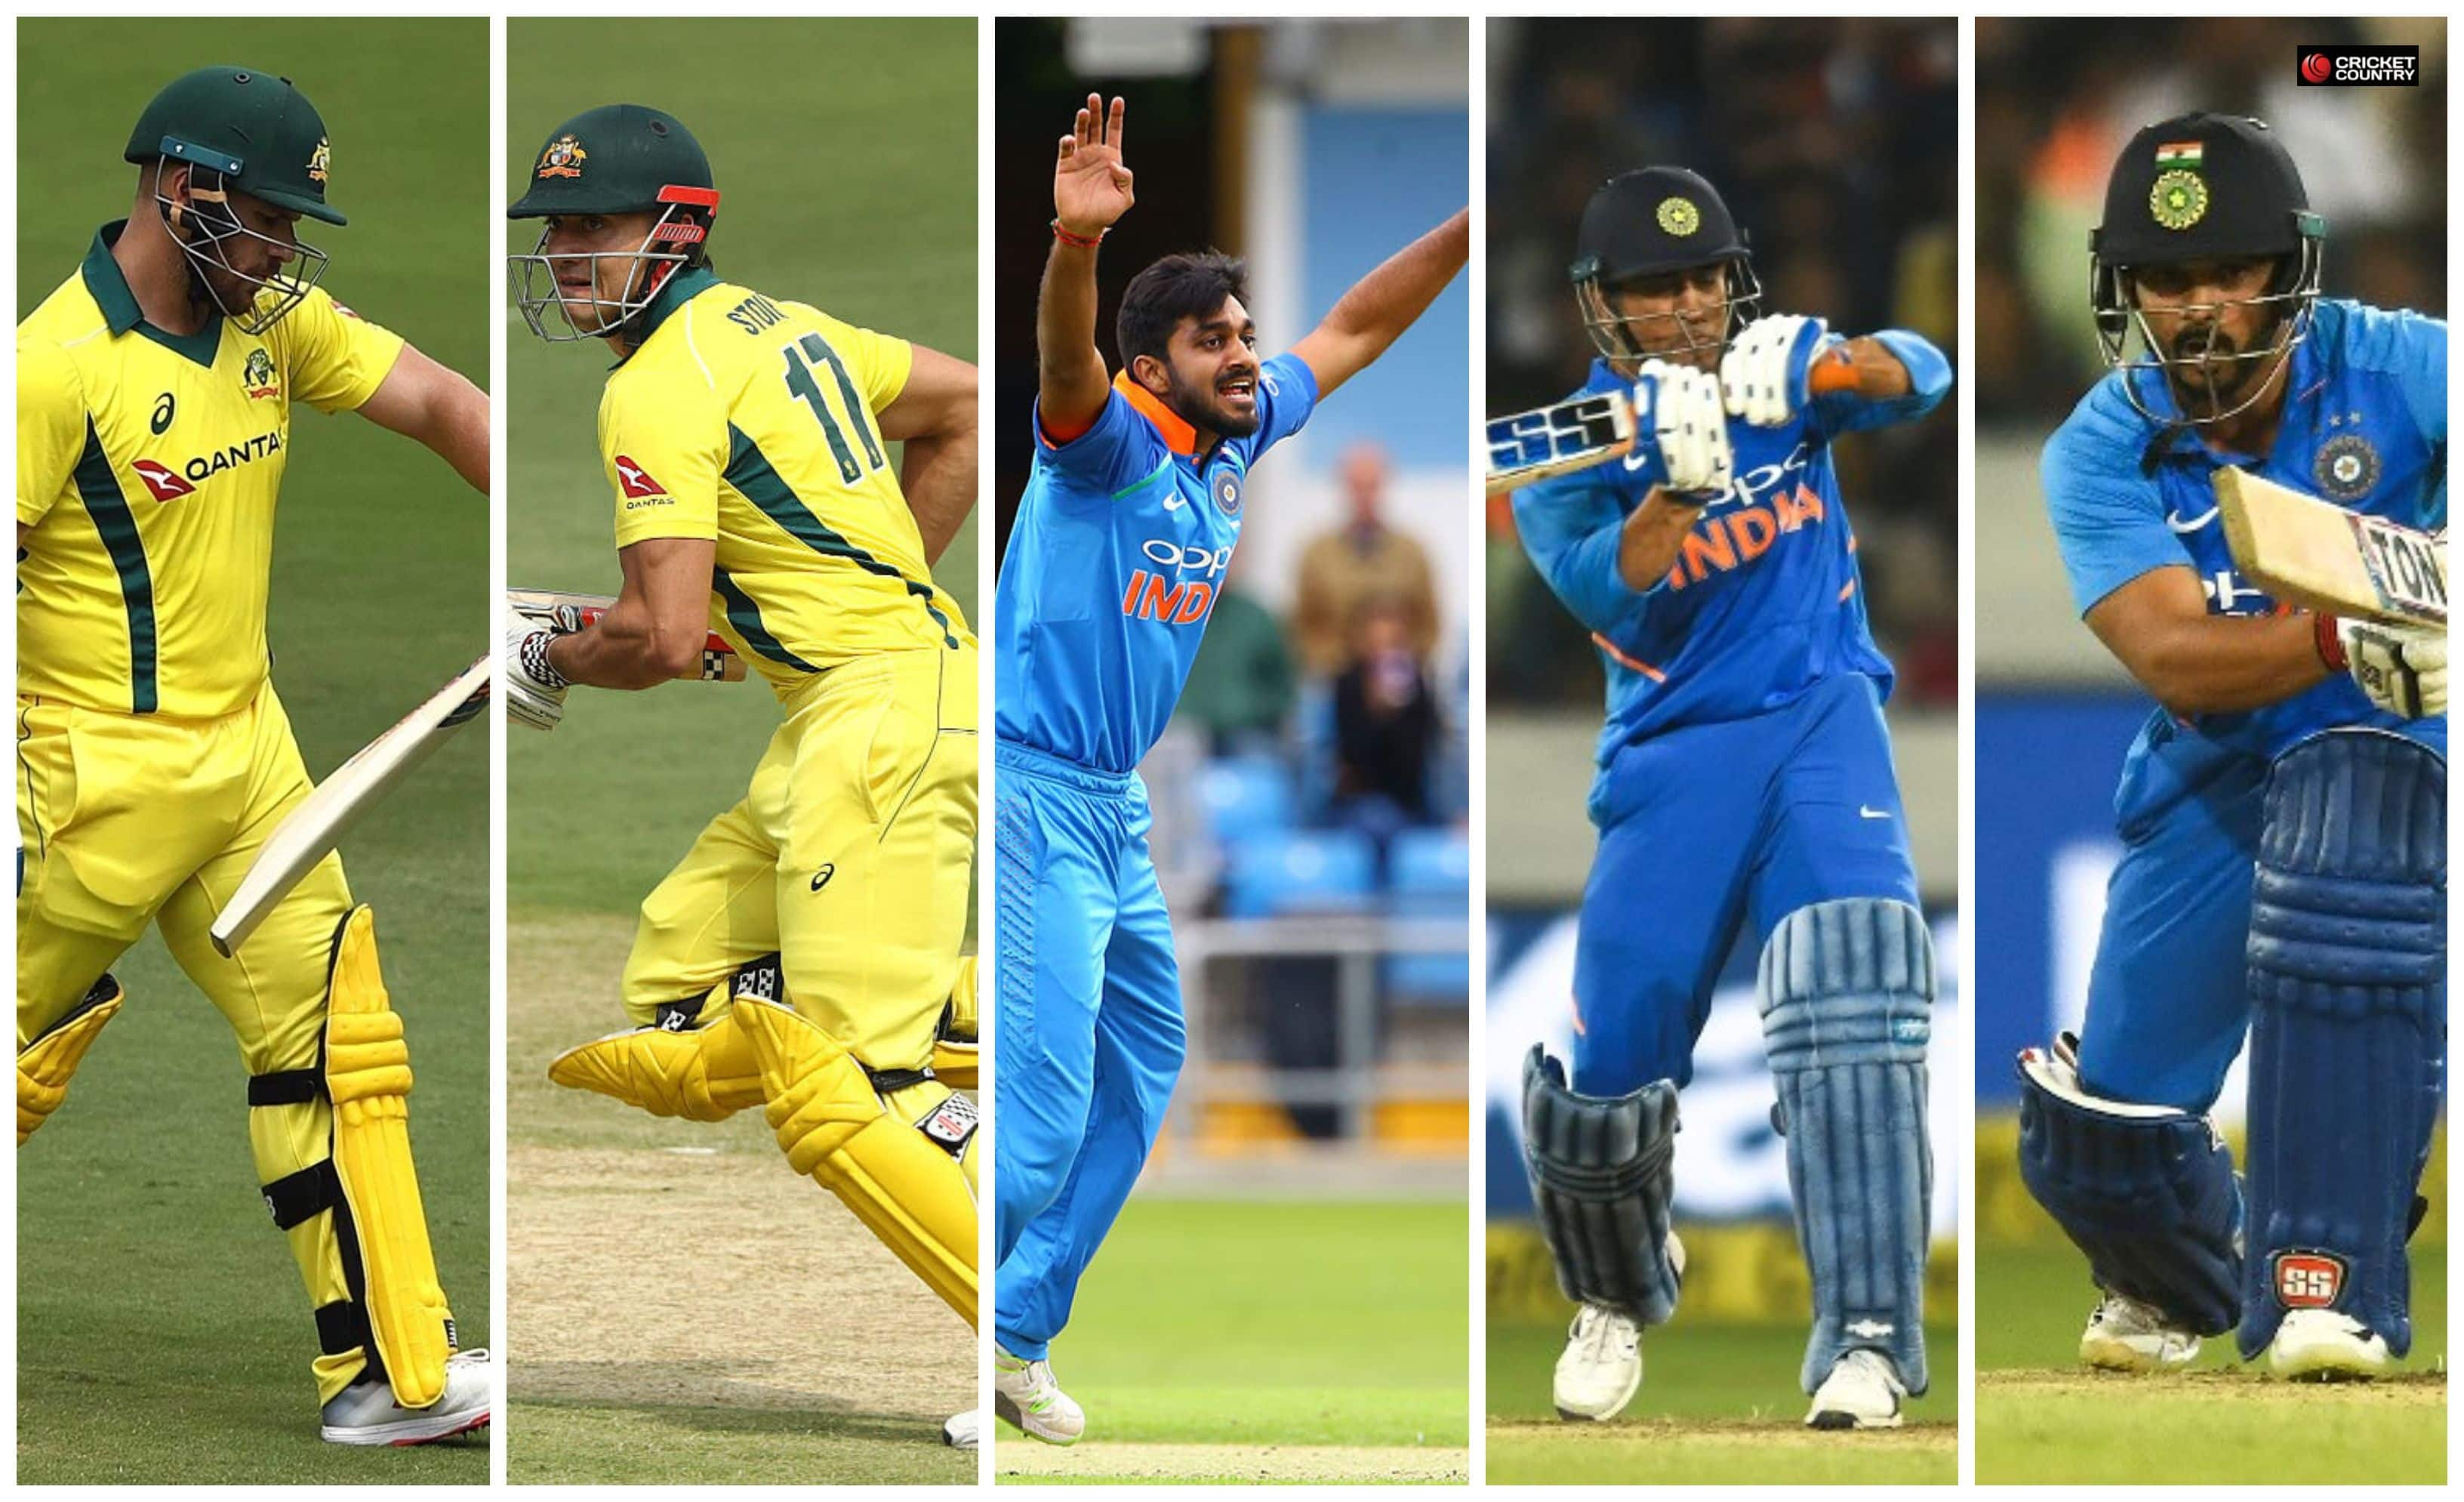 Talking points: Finch's forgettable 100th, Dhoni does it again, Jadhav seals No 6 spot